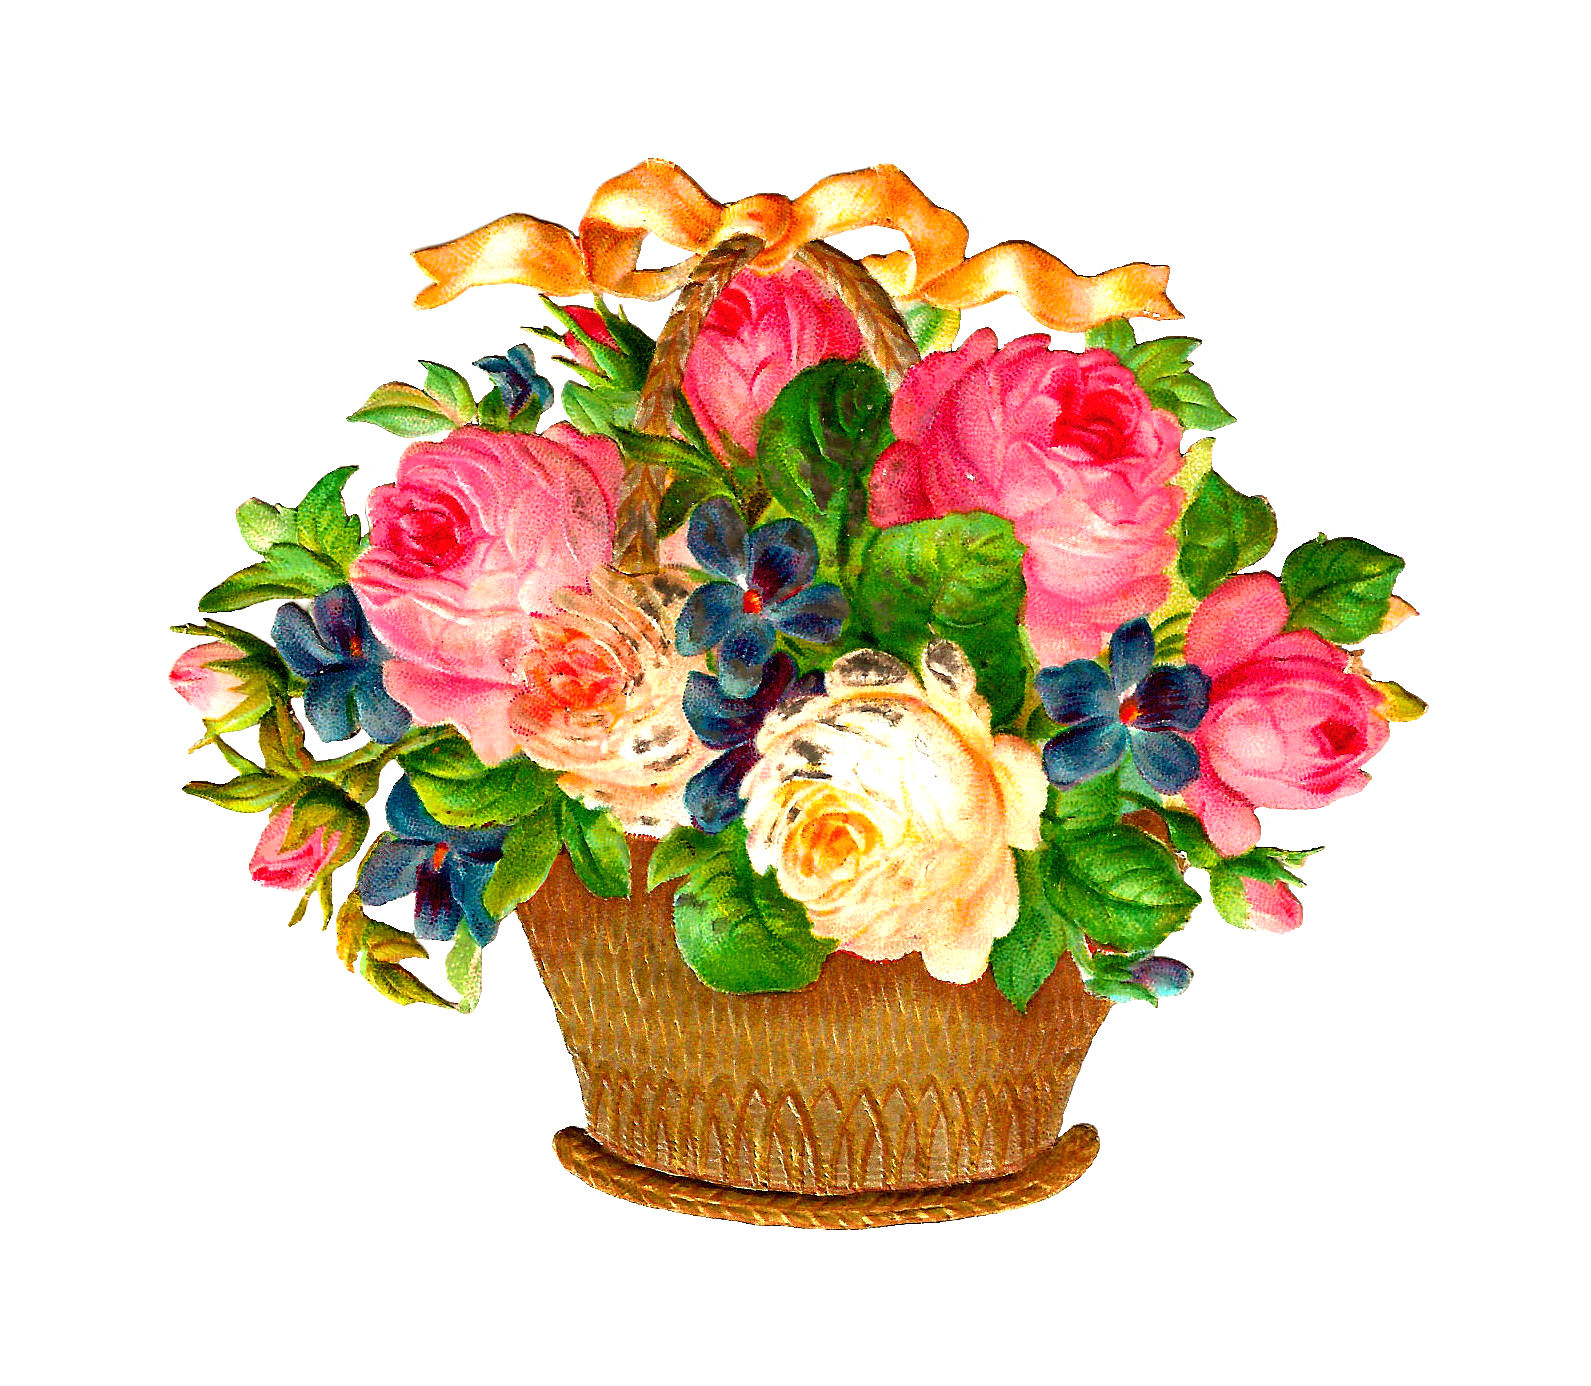 Free Flower Basket Graphic  Pink And White Roses And Flowers In